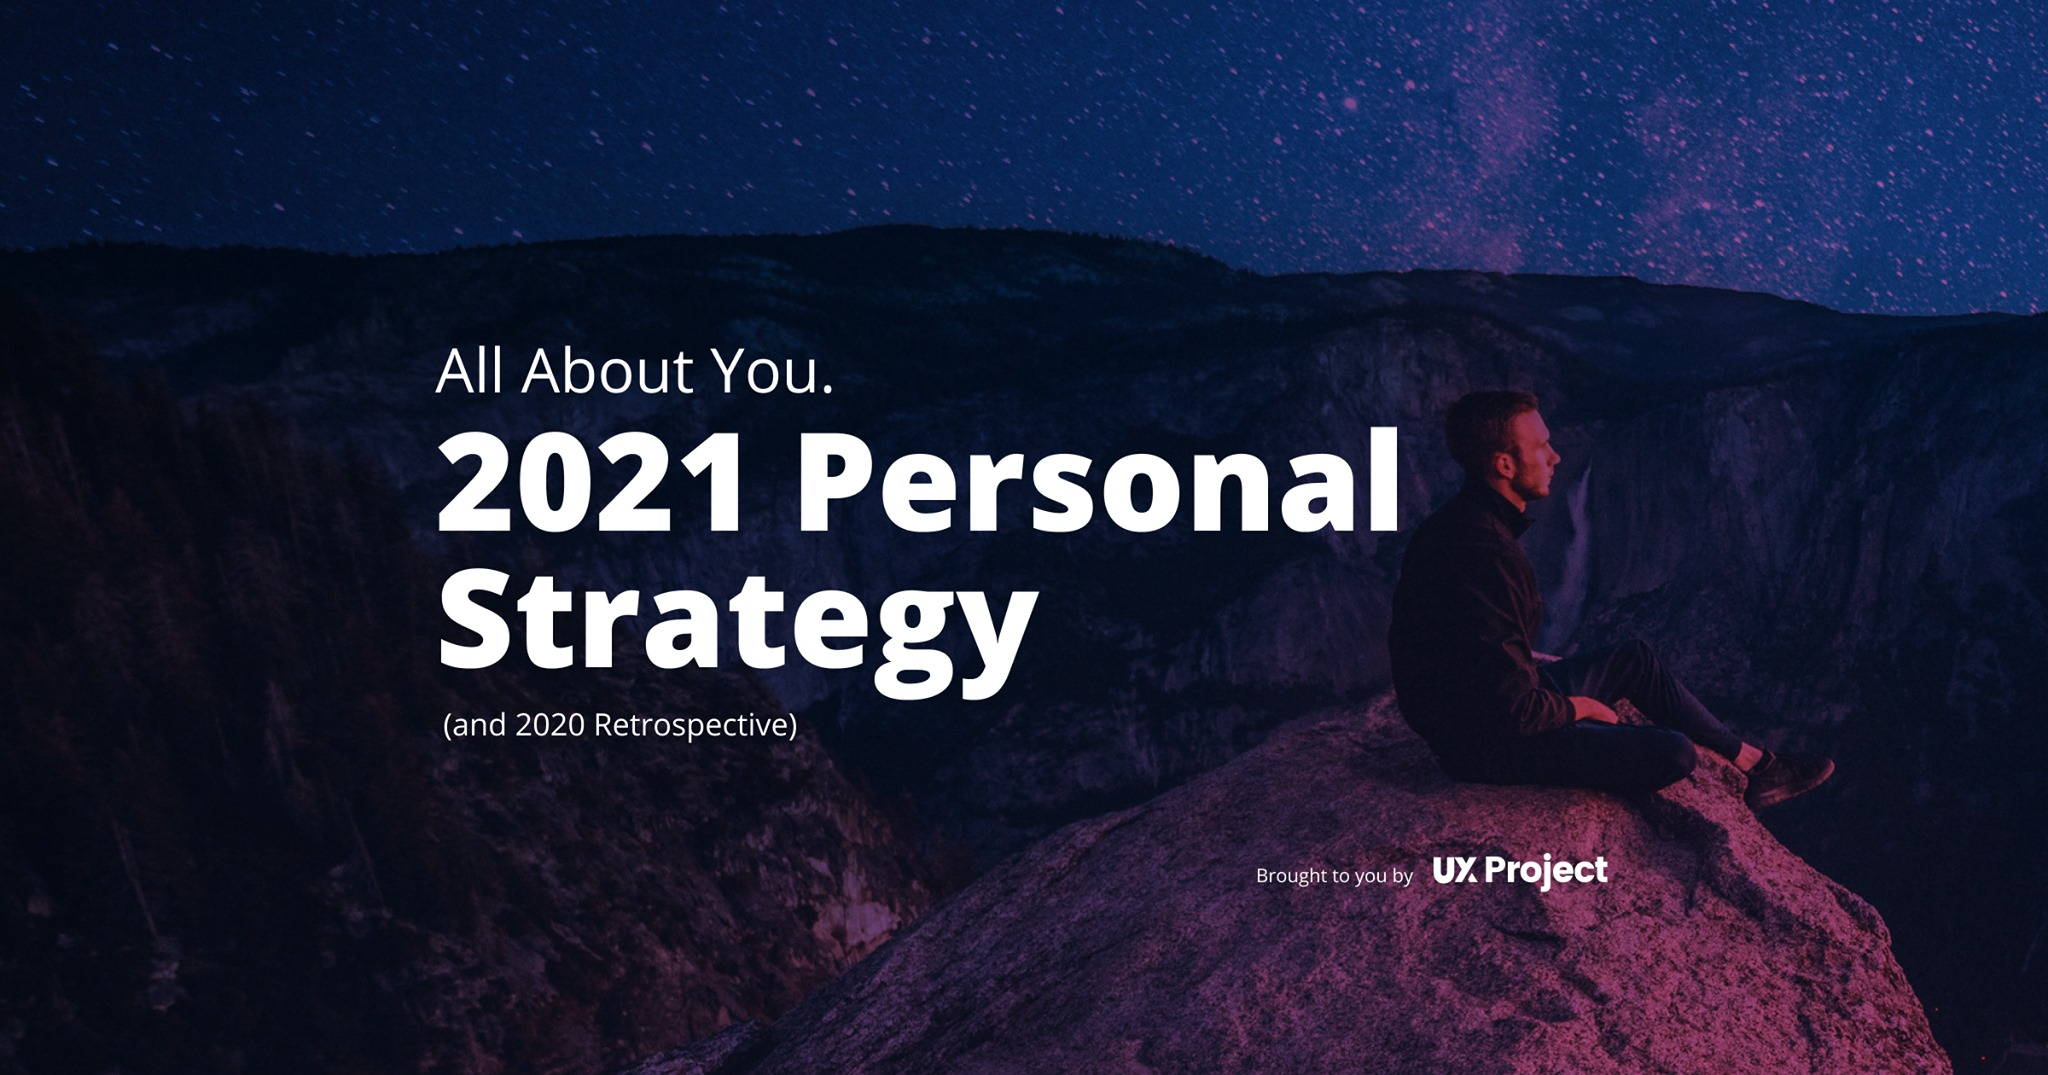 2021 Personal Strategy (and 2020 retrospective)